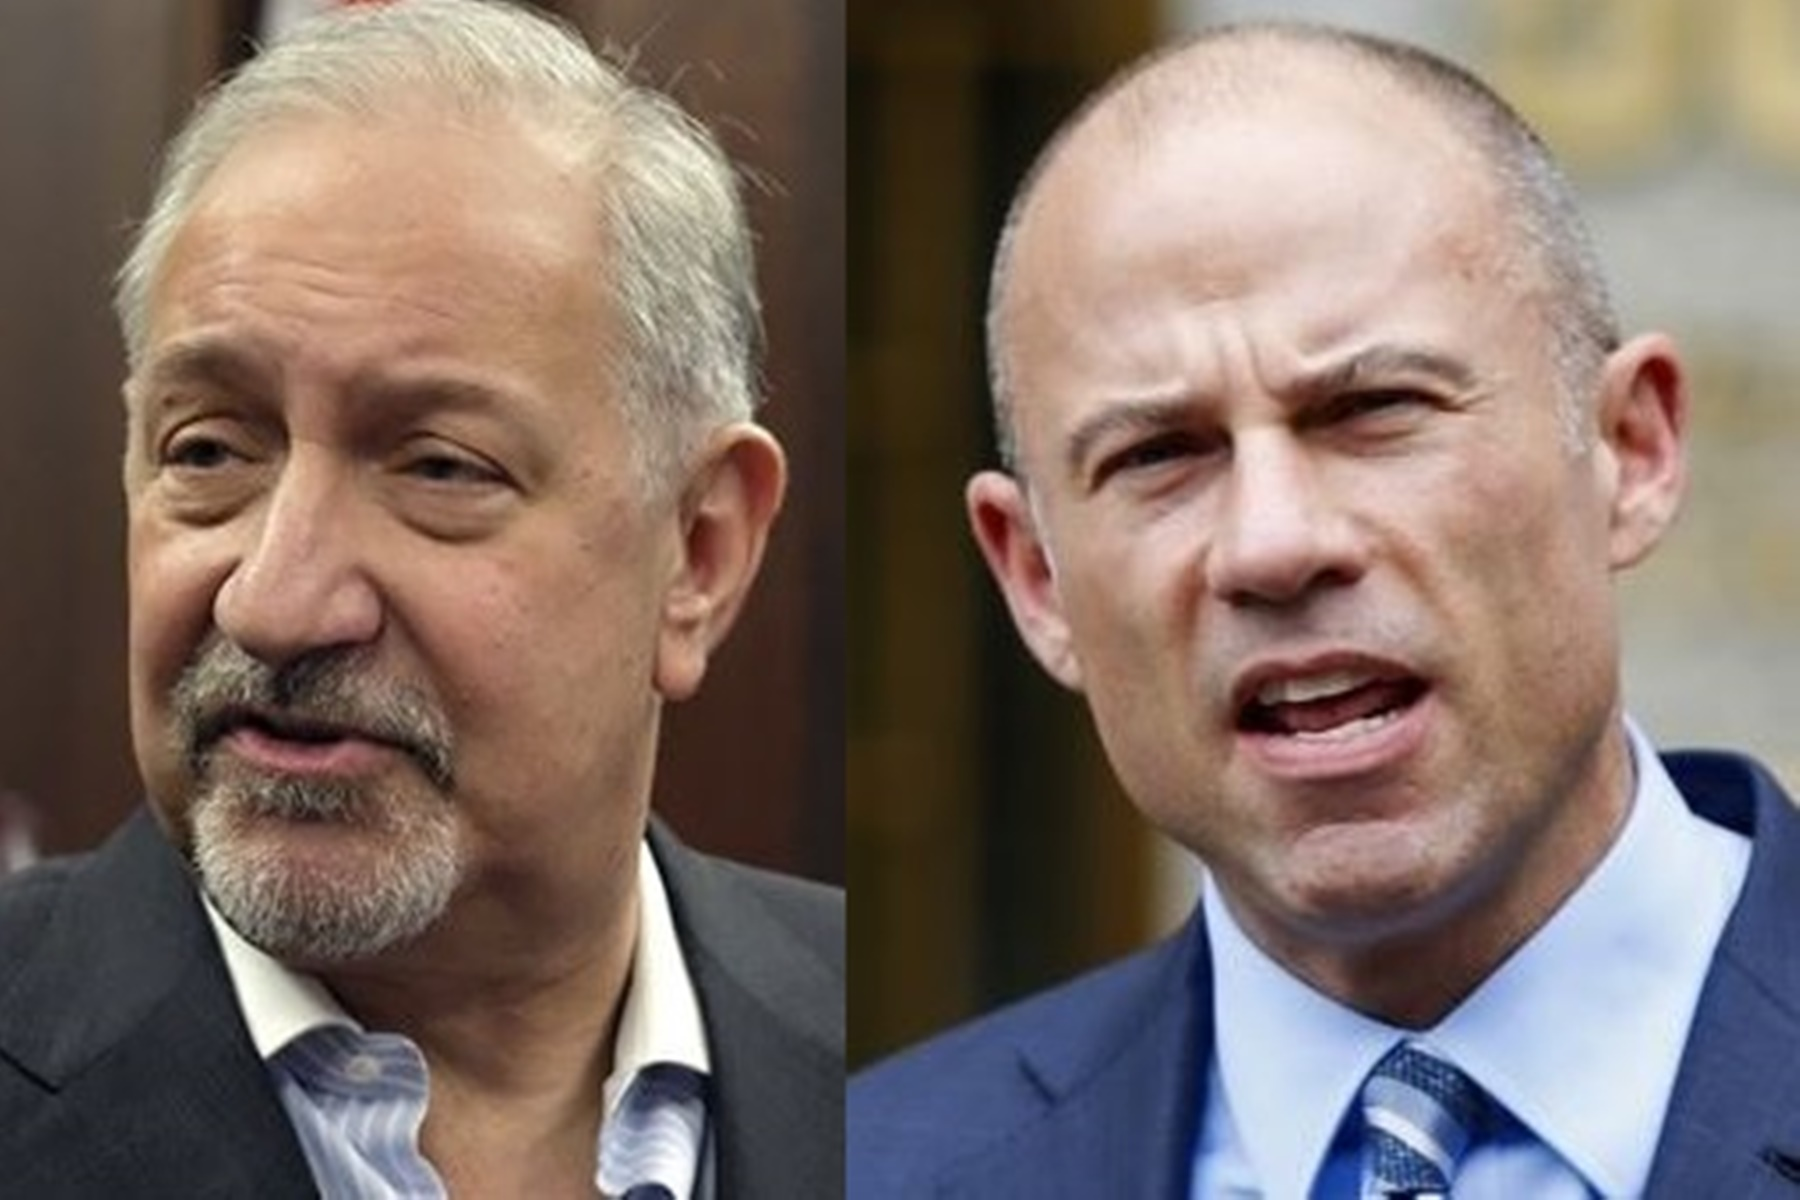 jussie-smolletts-lawyer-mark-geragos-is-michael-avenatti-co-conspirator-in-the-nike-extortion-case-is-he-in-serious-trouble